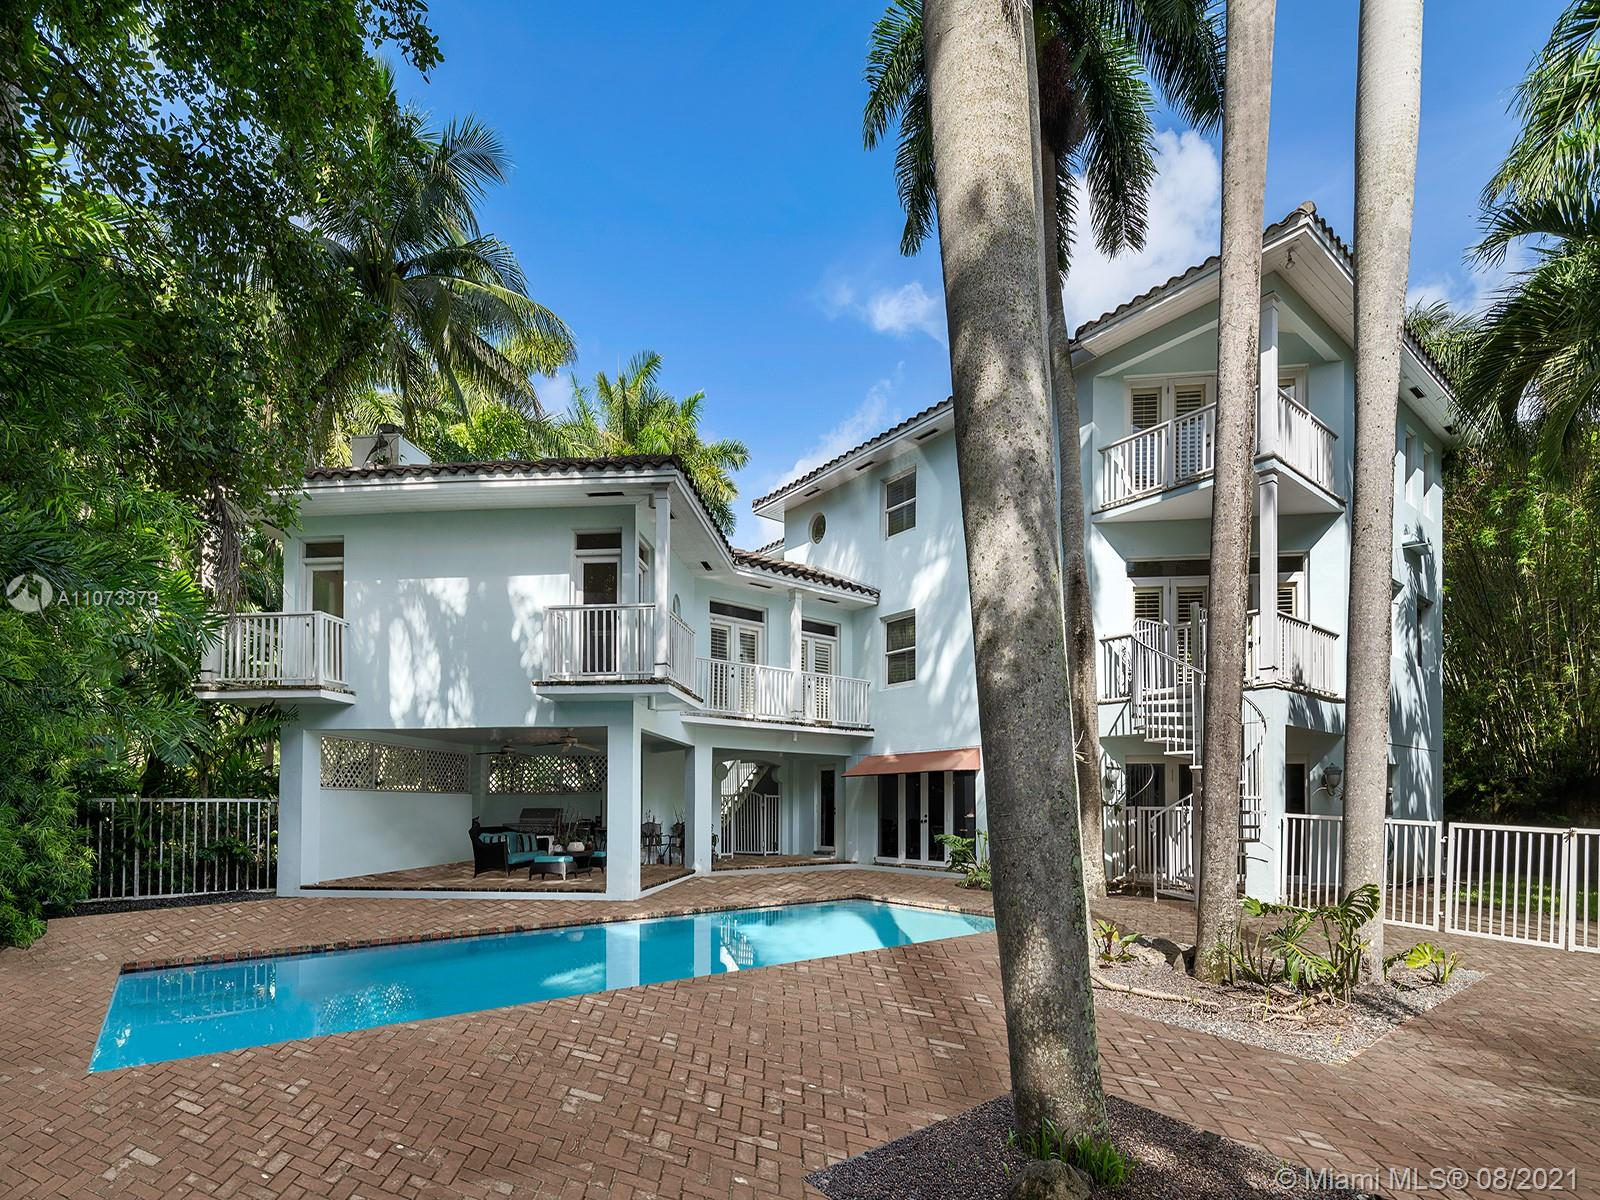 Located along a private, guard gated street in Coconut Grove known as the Anchorage, Reef Haven is a three-story home just a few blocks from Cocowalk with spectacular shopping and dining in the famed heart of the Grove. You enter into the double-height gallery on the main level, offering a cupola with portholes, and as you explore the home you're presented with over 10 balconies facing every direction. With vaulted ceilings throughout, the 6,000 square foot house offers a variety of gathering spaces, including formal living and dining rooms, a recreation room off the pool and lanai, and an impressively large office. Each space has beautiful light throughout. Renovate or rebuild to create the home of your dreams, and take advantage of the excellent bones the existing house provides.